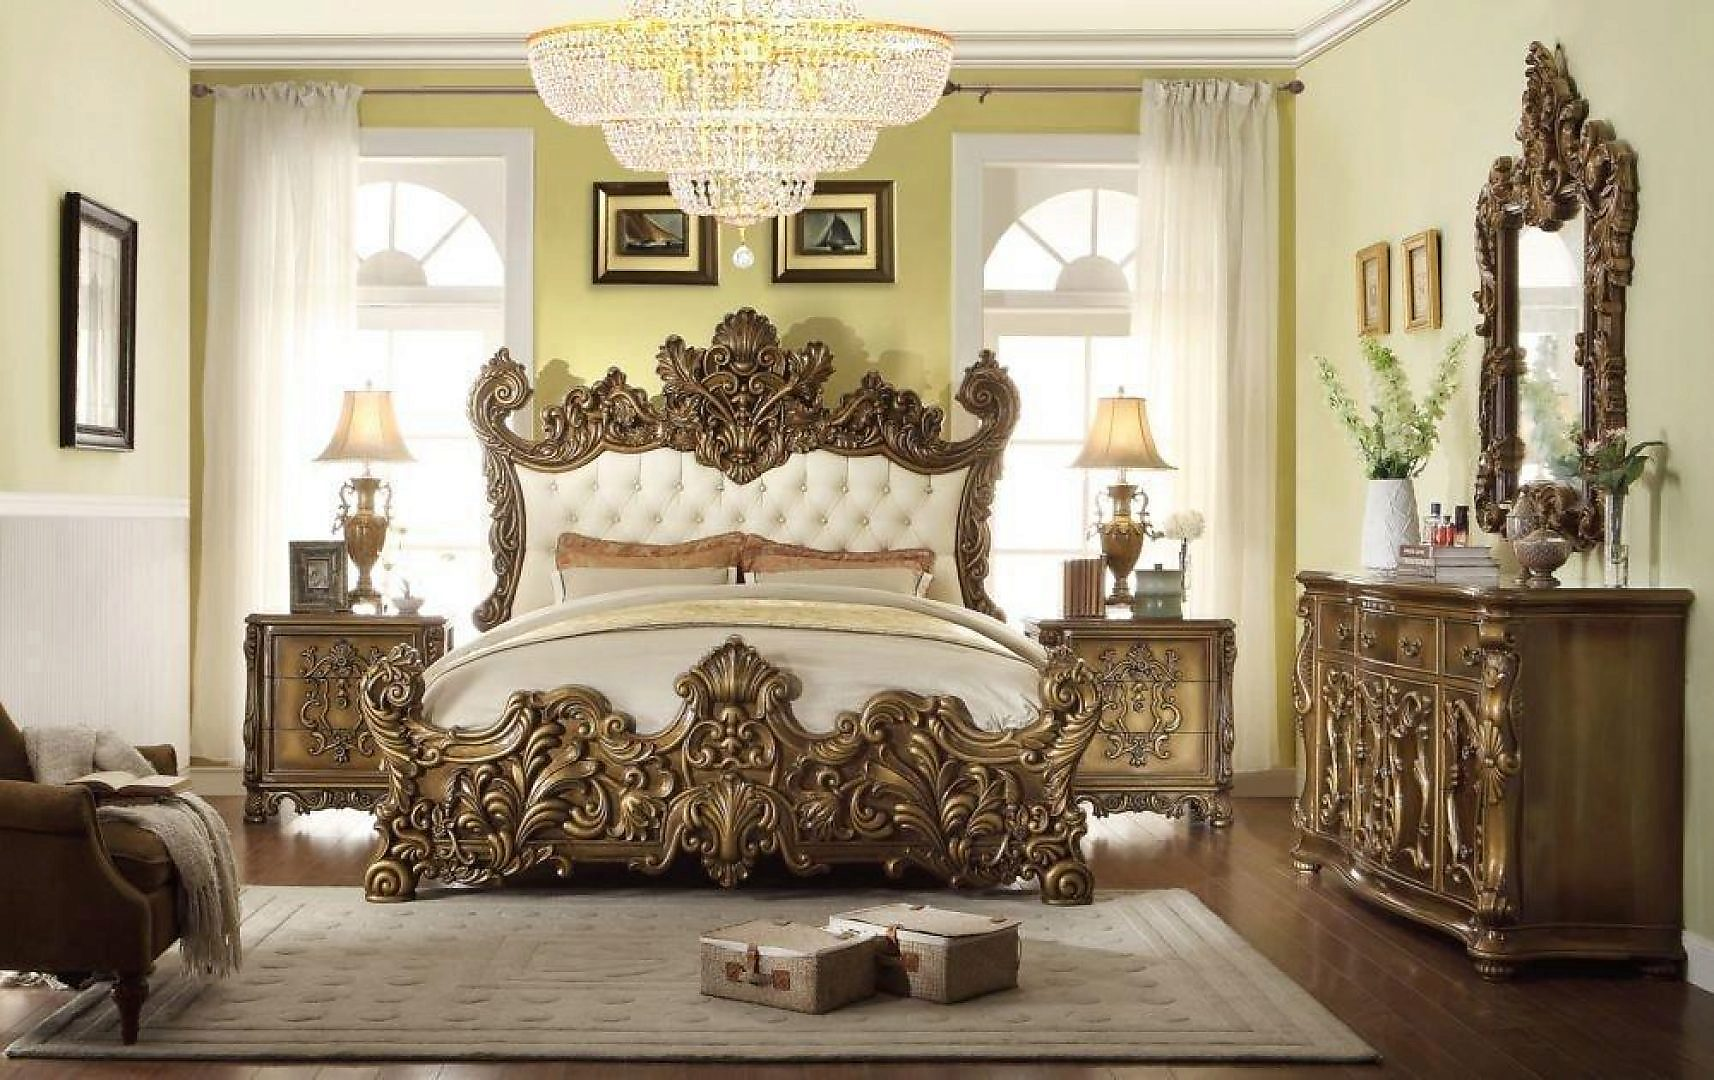 Traditional HD-8008 California King Bedroom 5Pcs in Beige by Homey Design